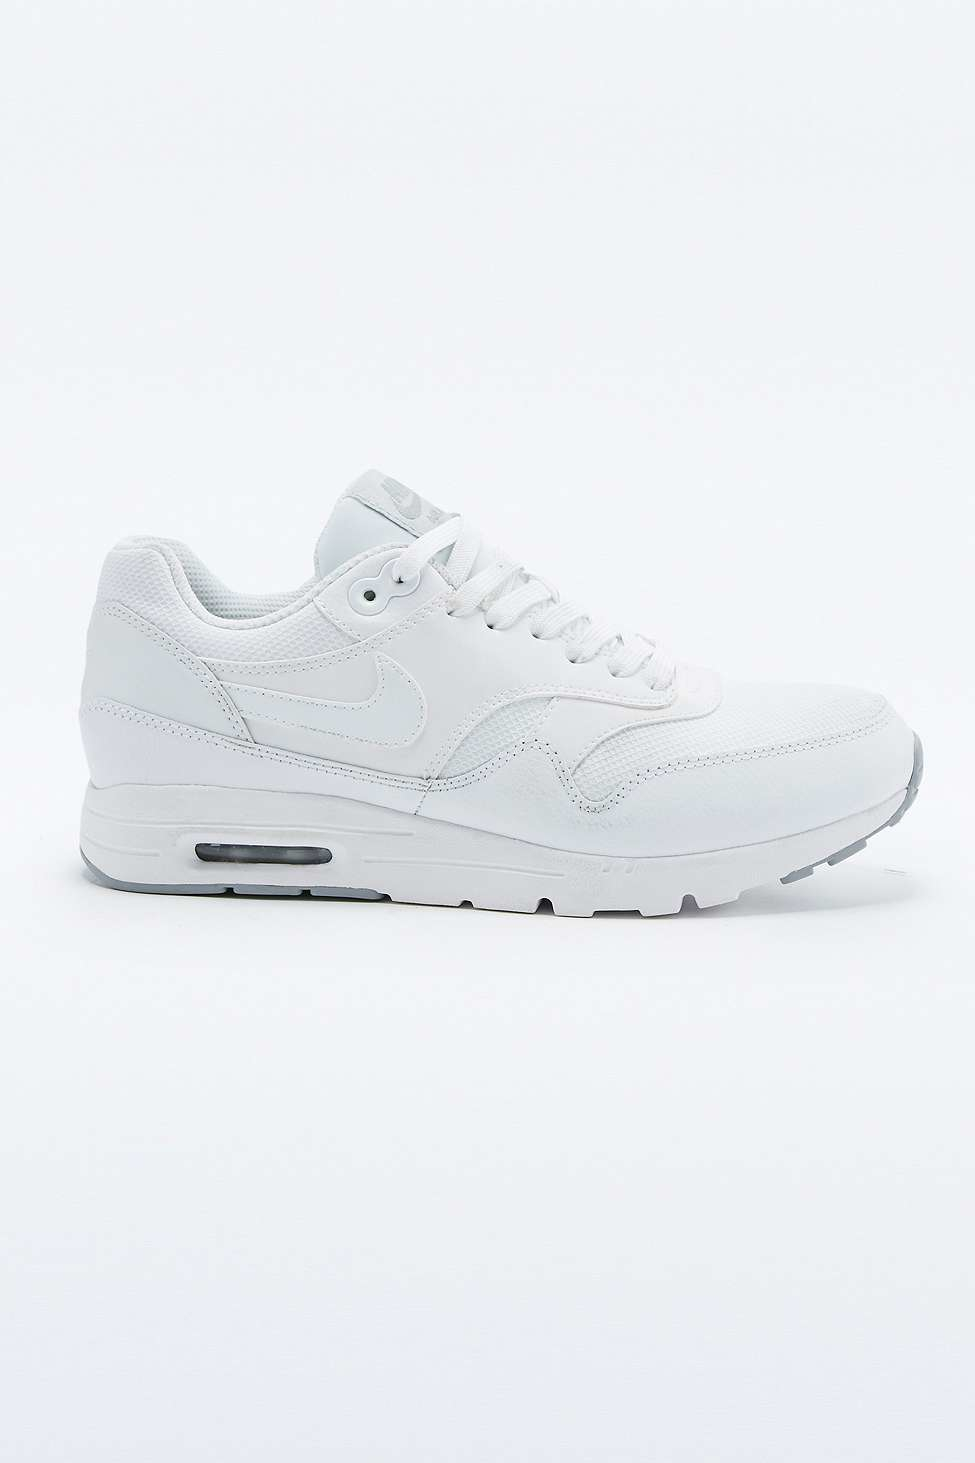 quality design b35fd e9ad2 Nike Air Max 1 Ultra Essentials White Trainers in White - Ly